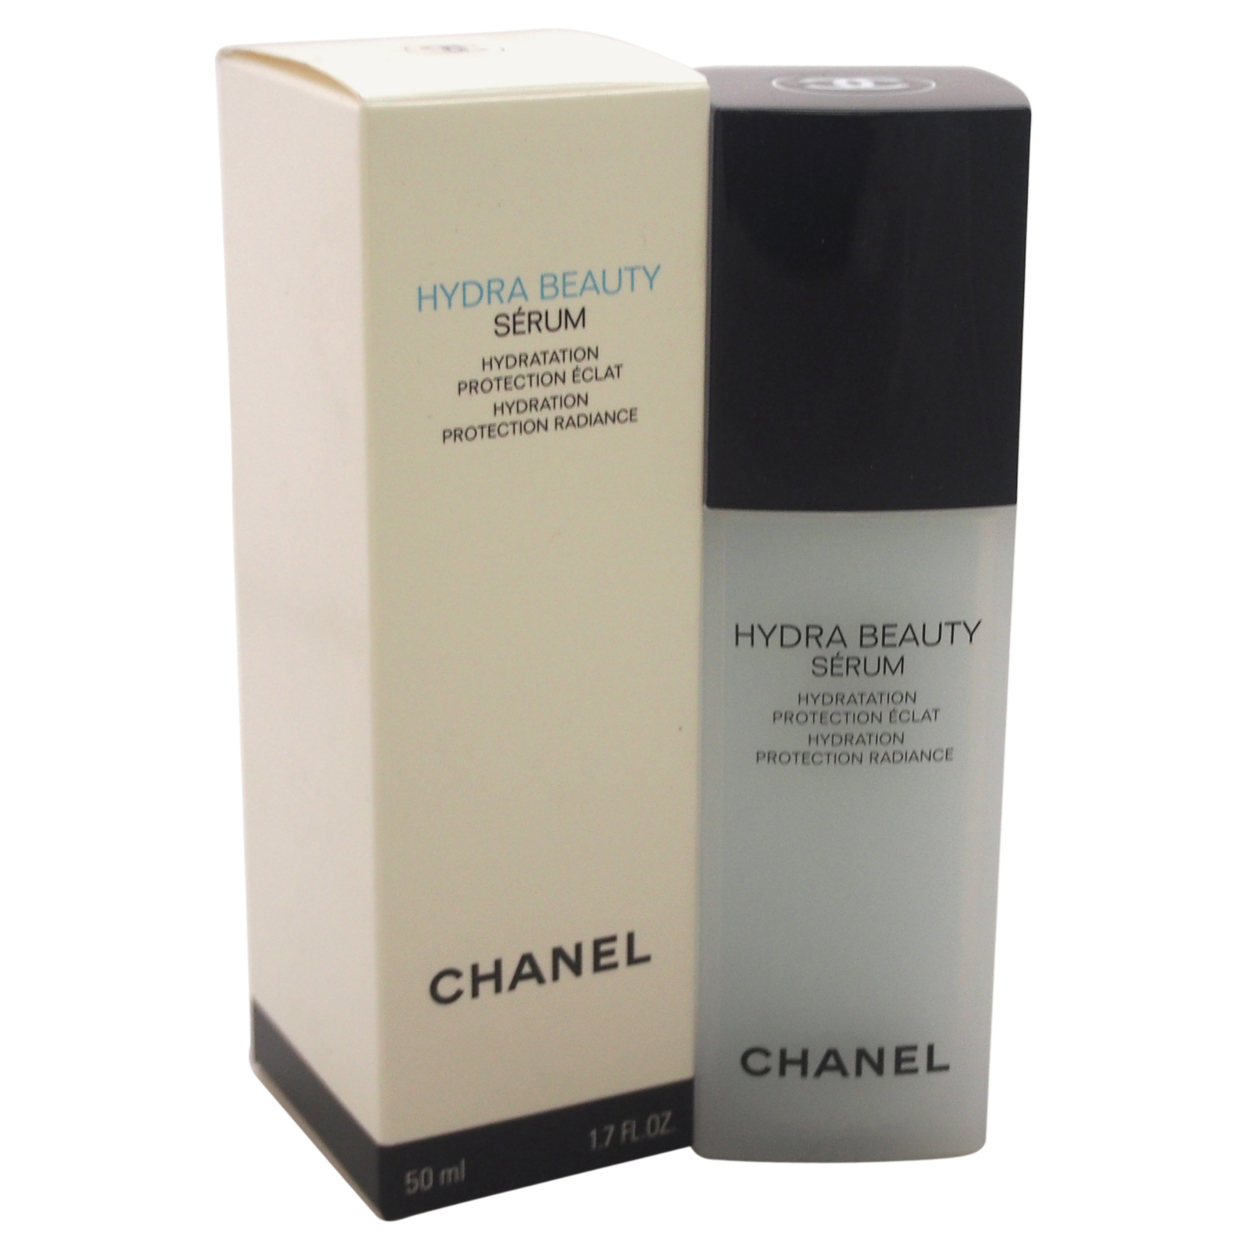 Hydra Beauty Serum Hydration Protection Radiance By Chanel For Unisex 1.7 Oz Serum